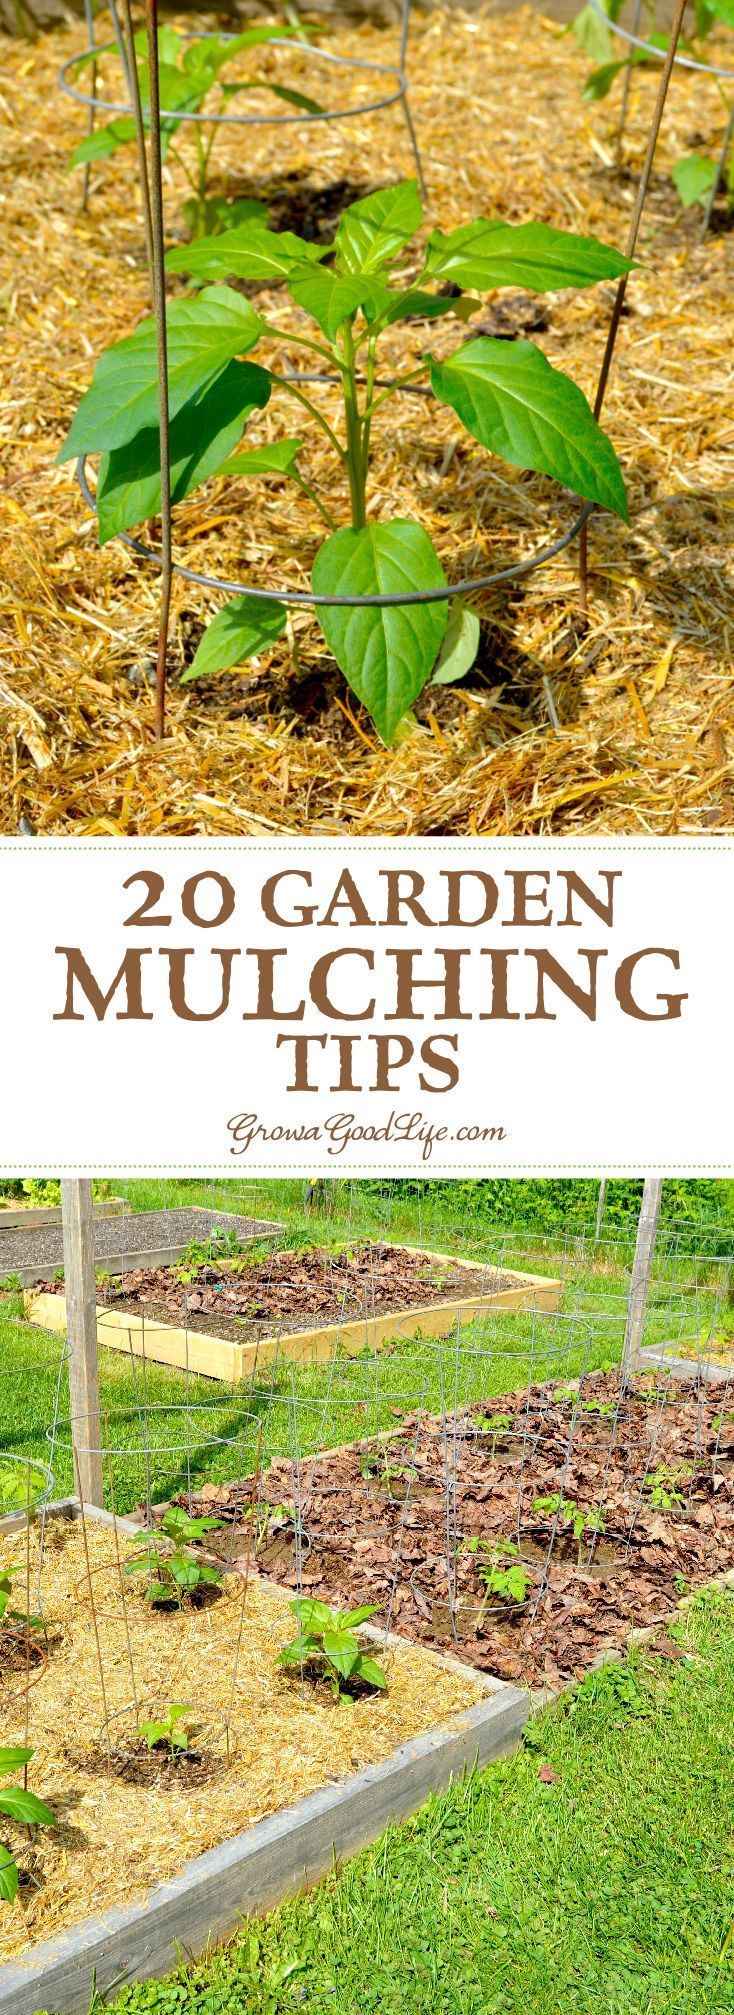 20 Garden Mulching Tips from Seasoned Growers | Layering, Gardens ...